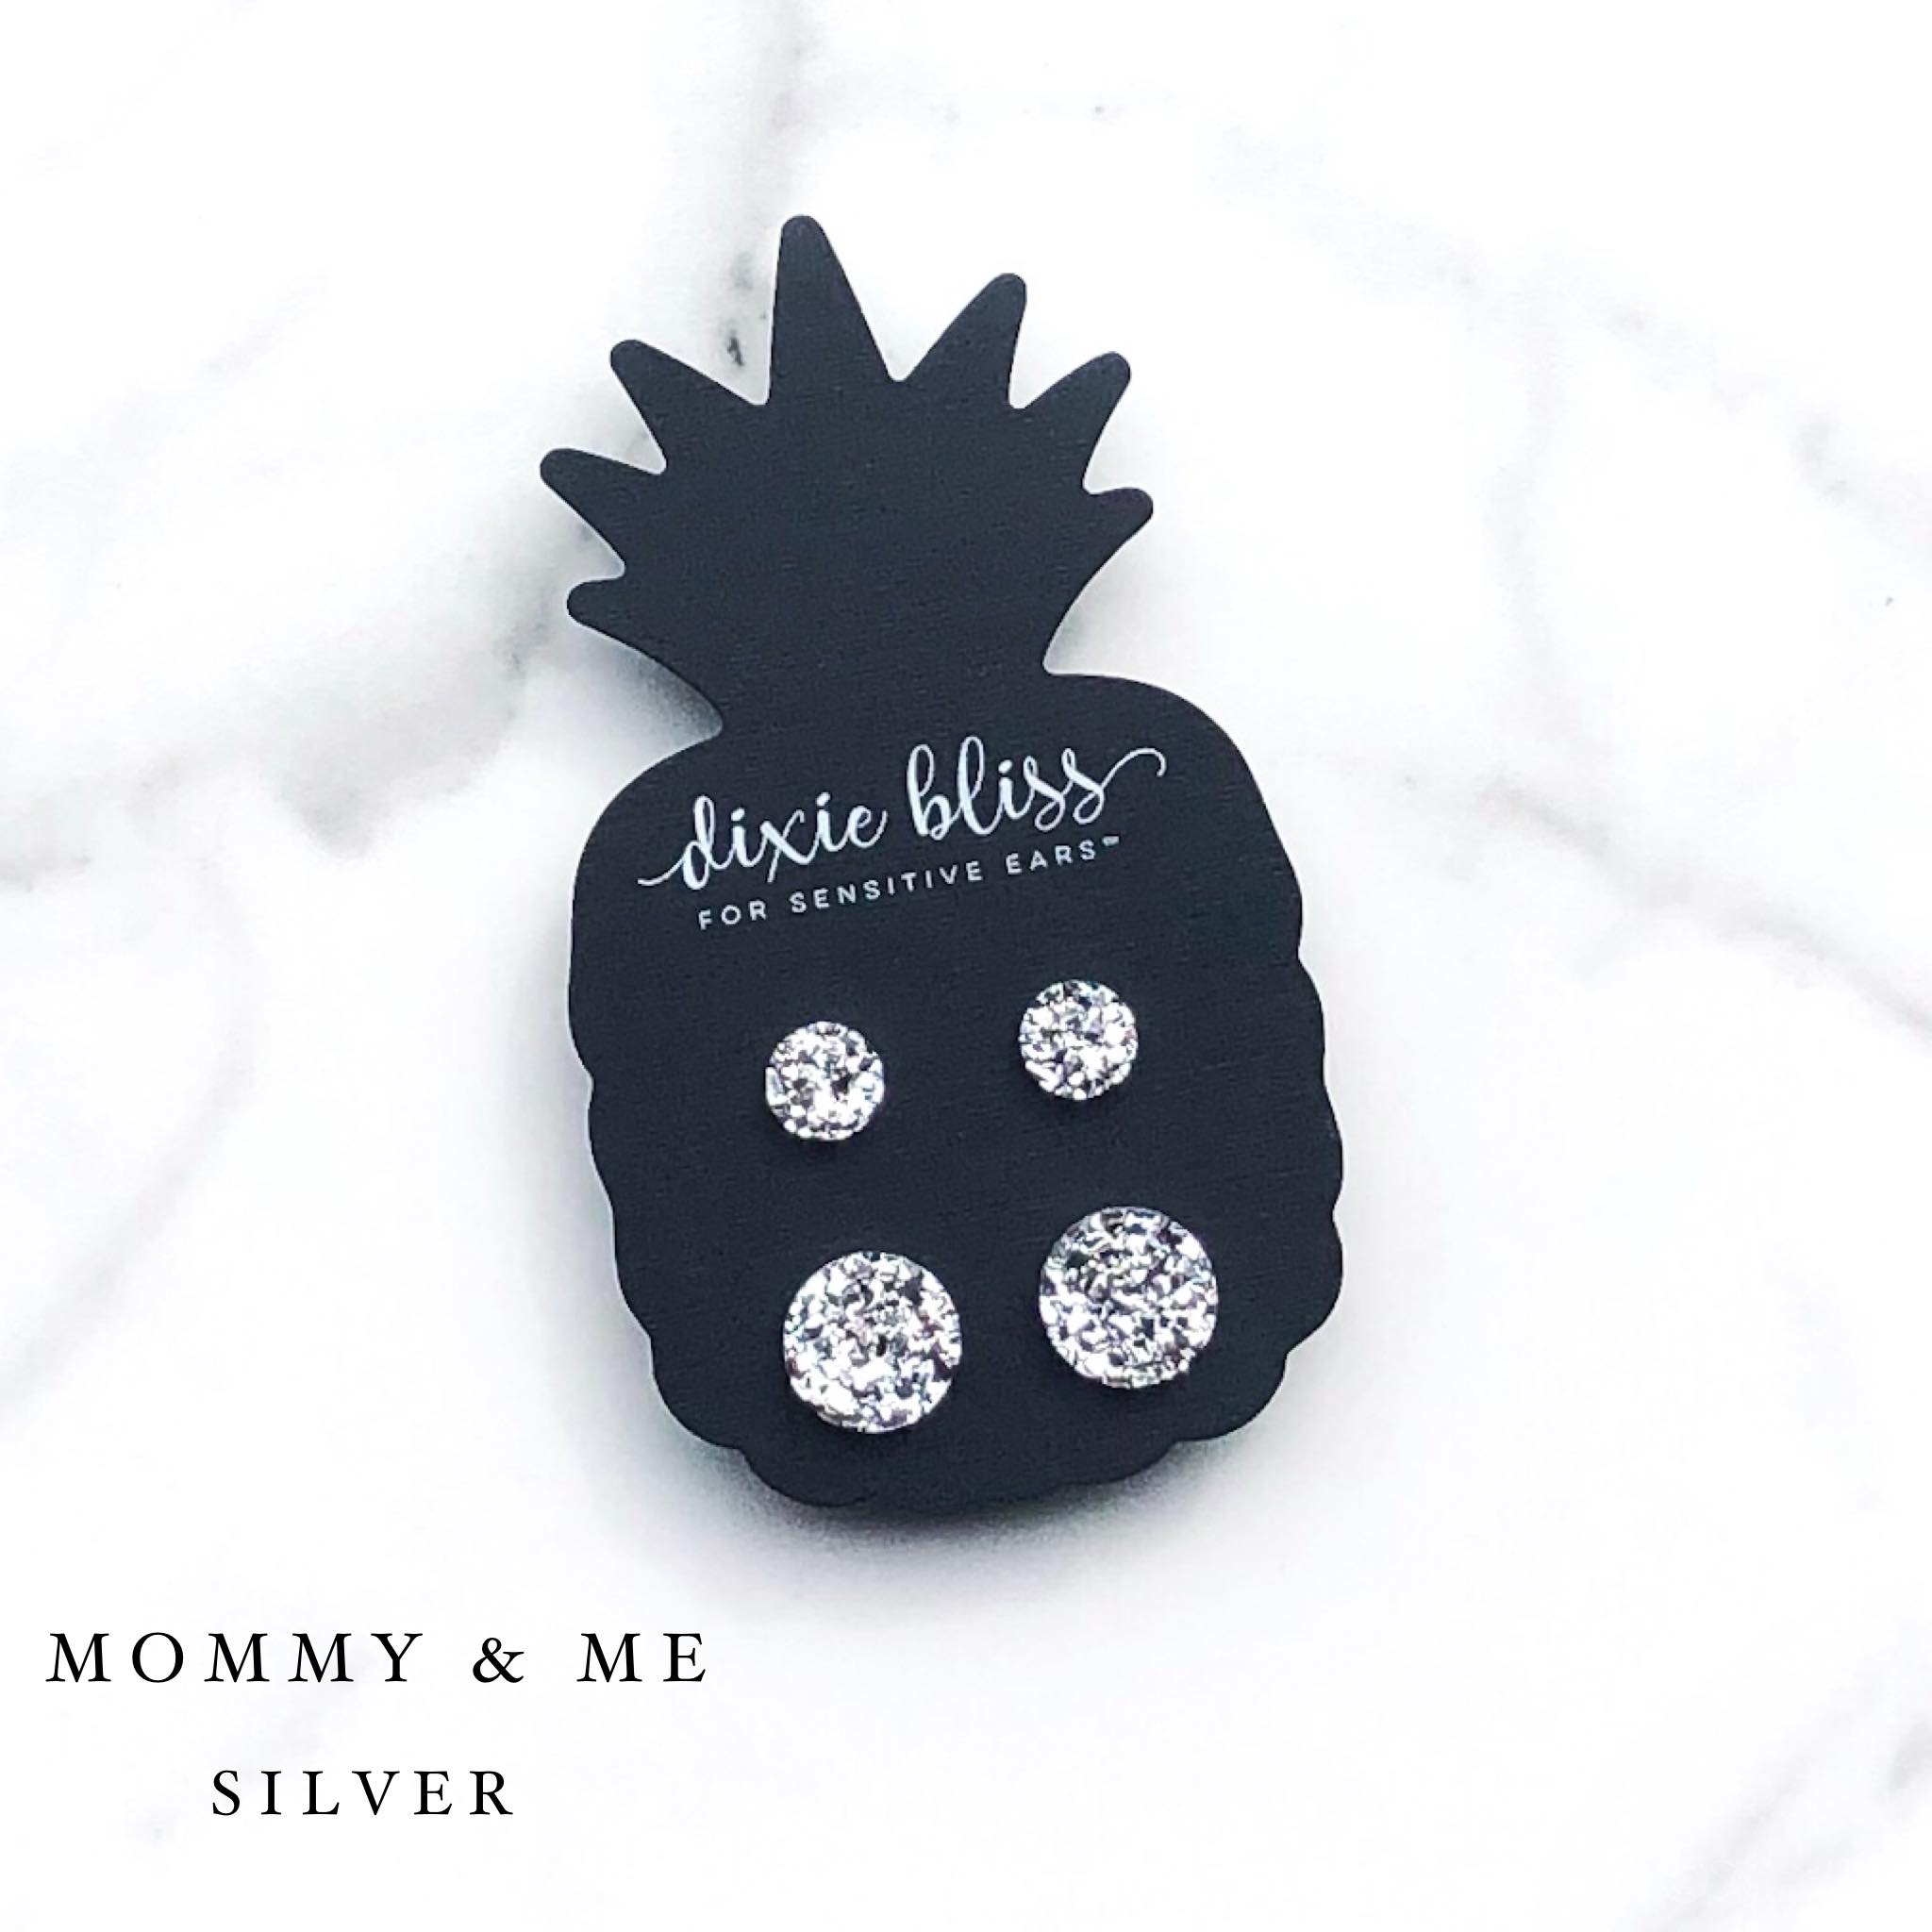 Mommy & Me Silver - Dixie Bliss - Duo Stud Earring Set